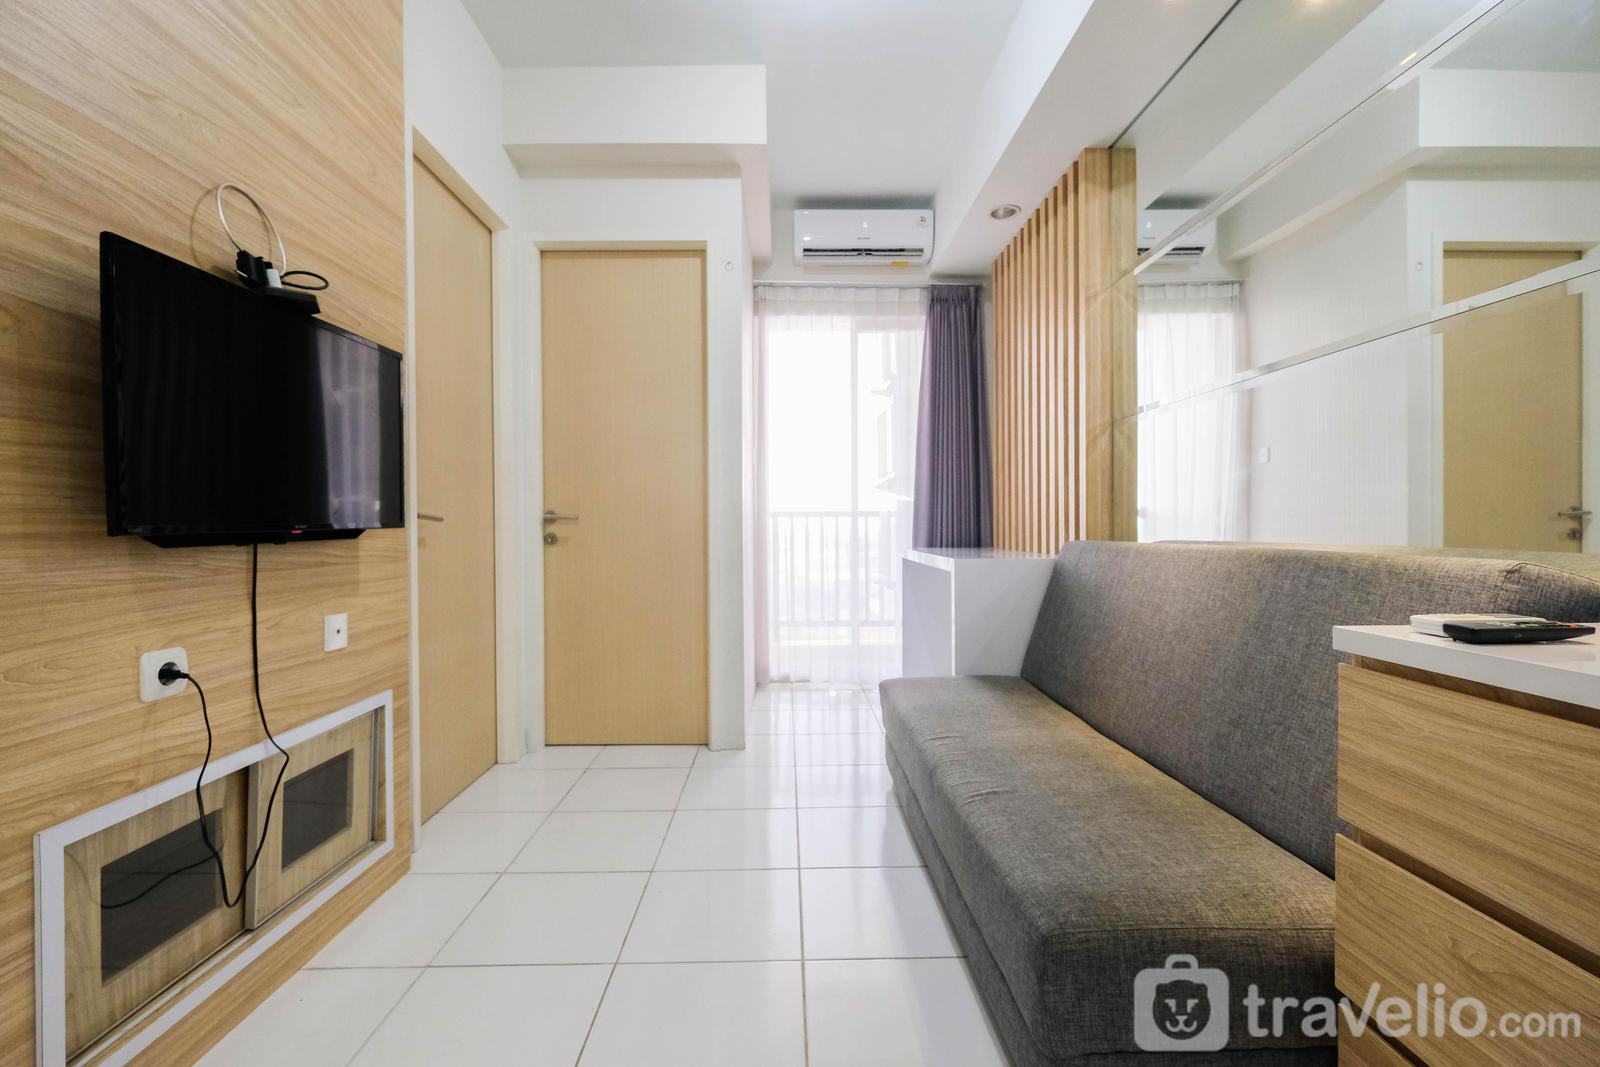 Ayodhya Residence Tangerang - Homey 2BR Ayodhya Residence Apartment By Travelio